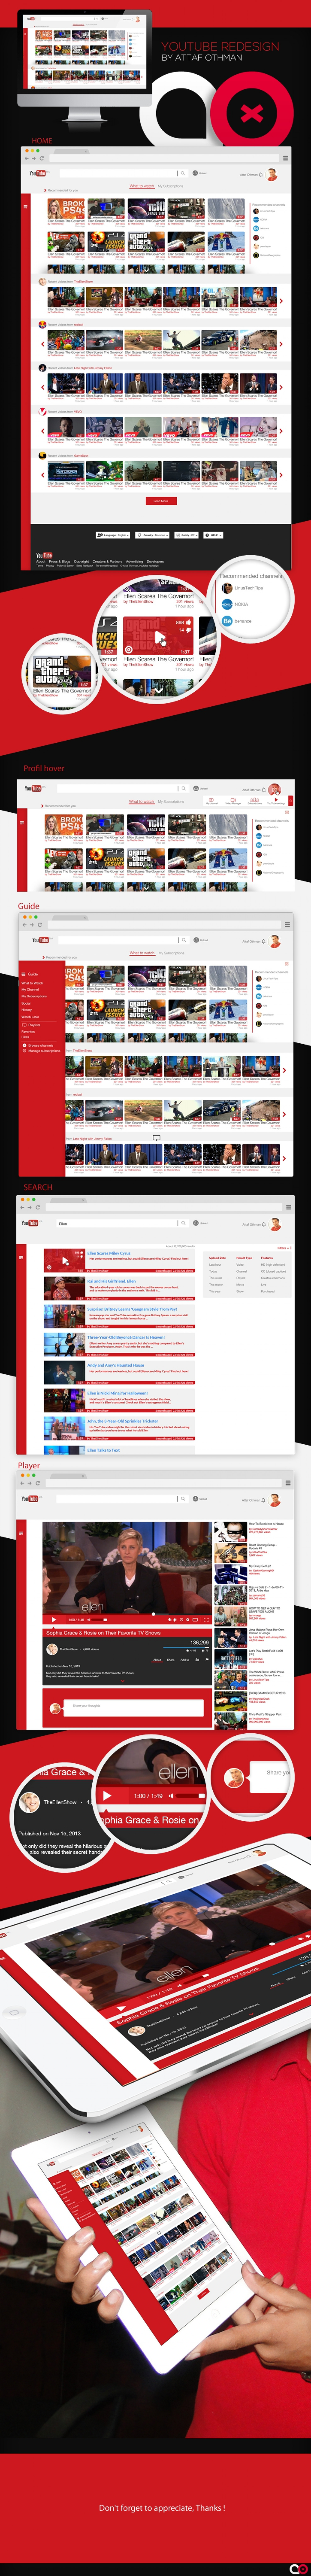 Youtube Redesign by me  Infographic